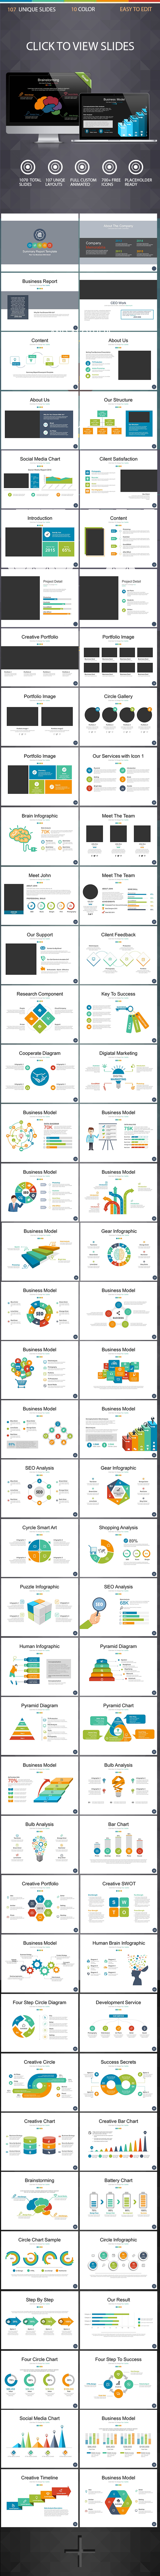 Modern Business PowerPoint Template 2 - Business PowerPoint Templates